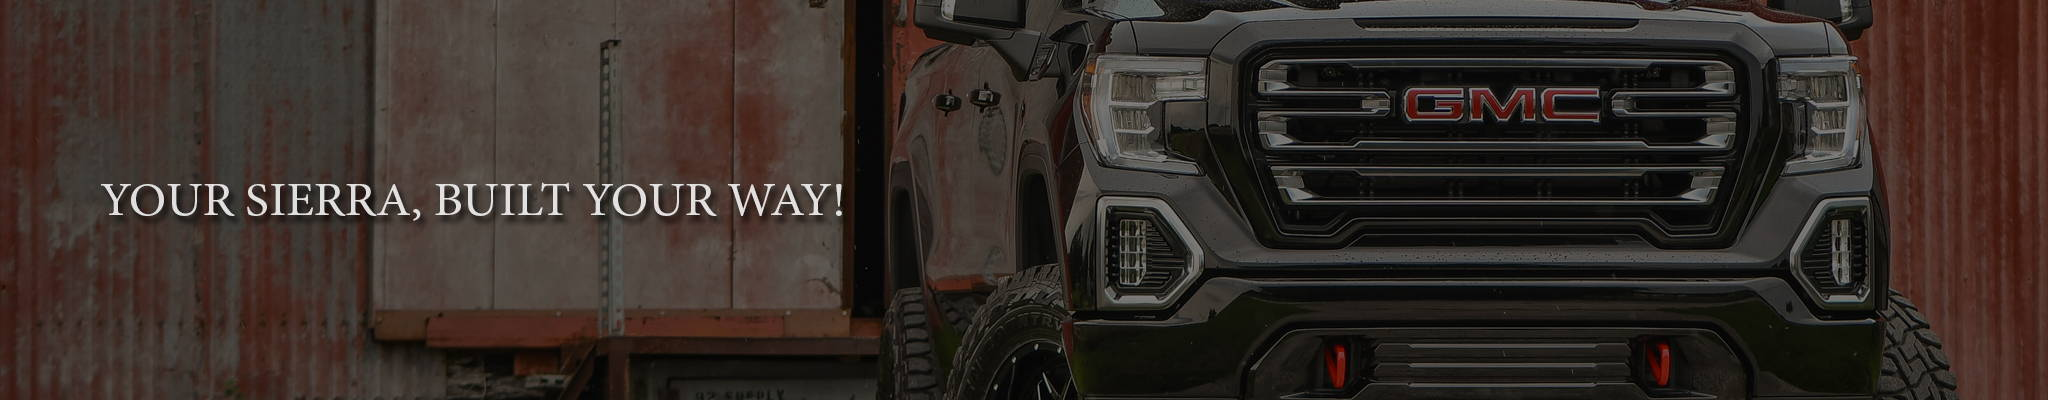 3C Truck Conversions Your GMC Truck Built Your Way! Customize your Build Here.